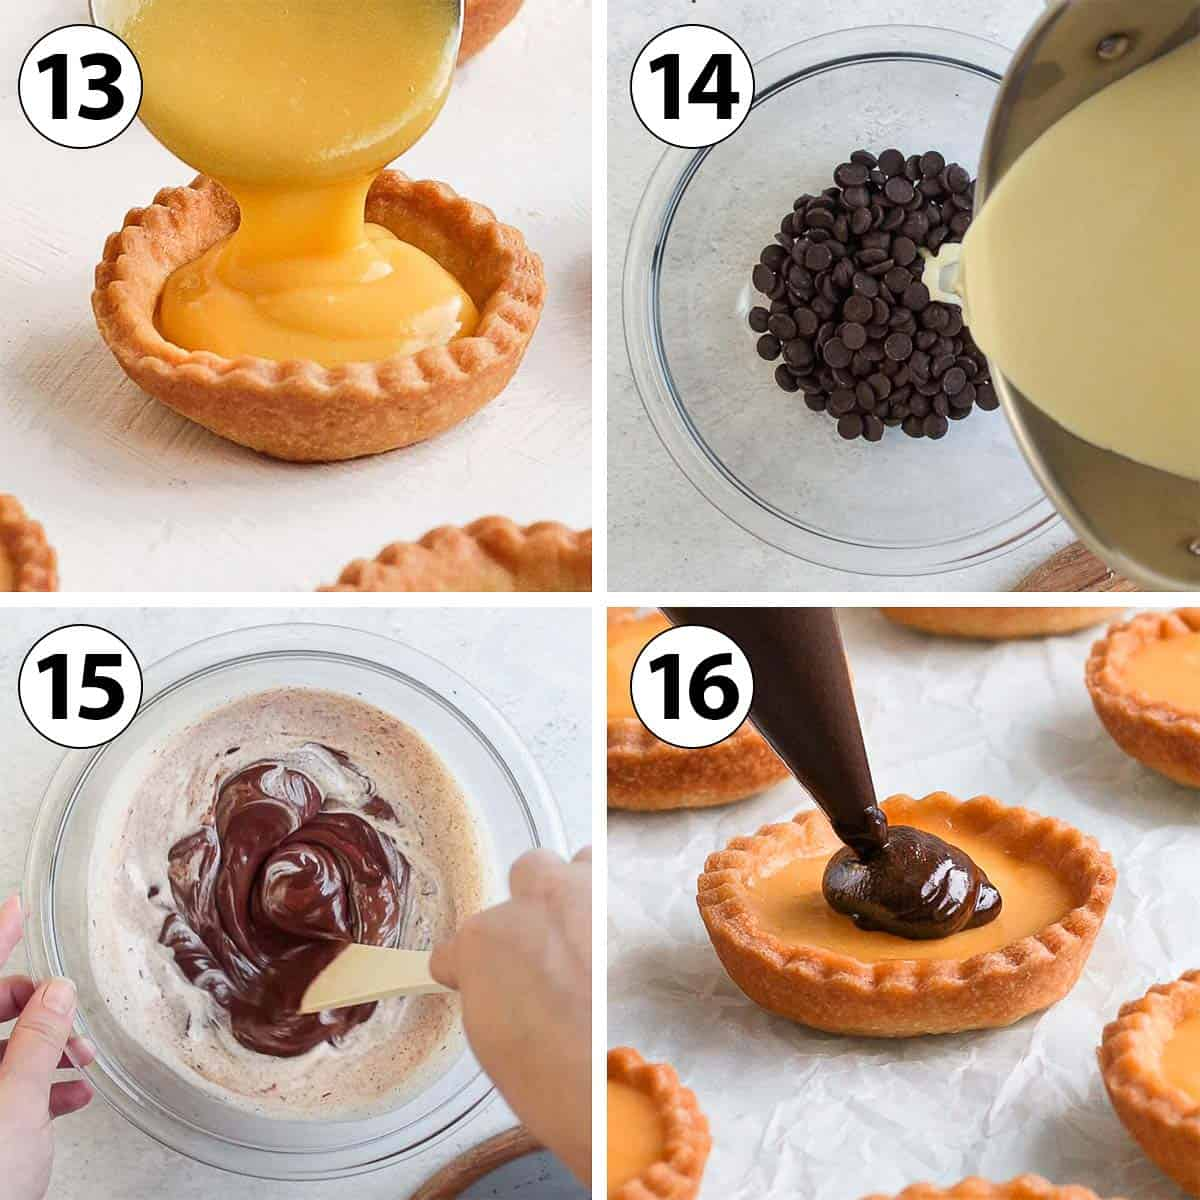 Process Shot Collage: assembling the tartlets and making the chocolate ganache topping.